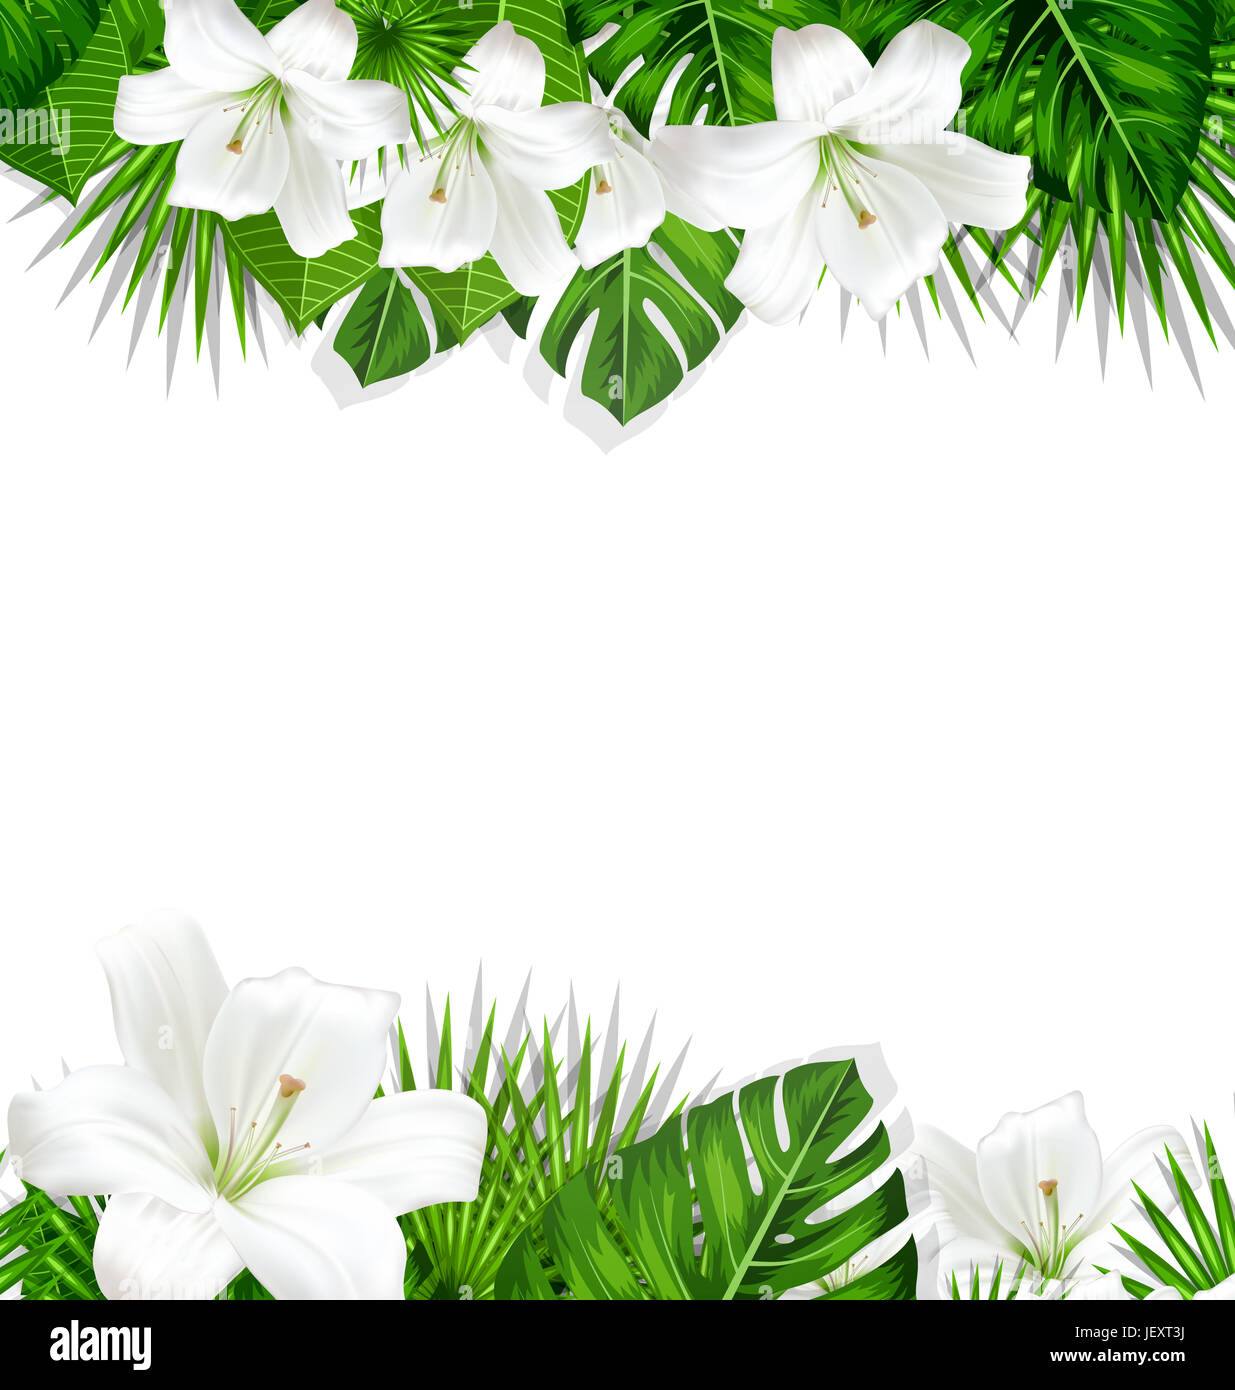 Frame Border Background Branch With Tropical Leaves And White